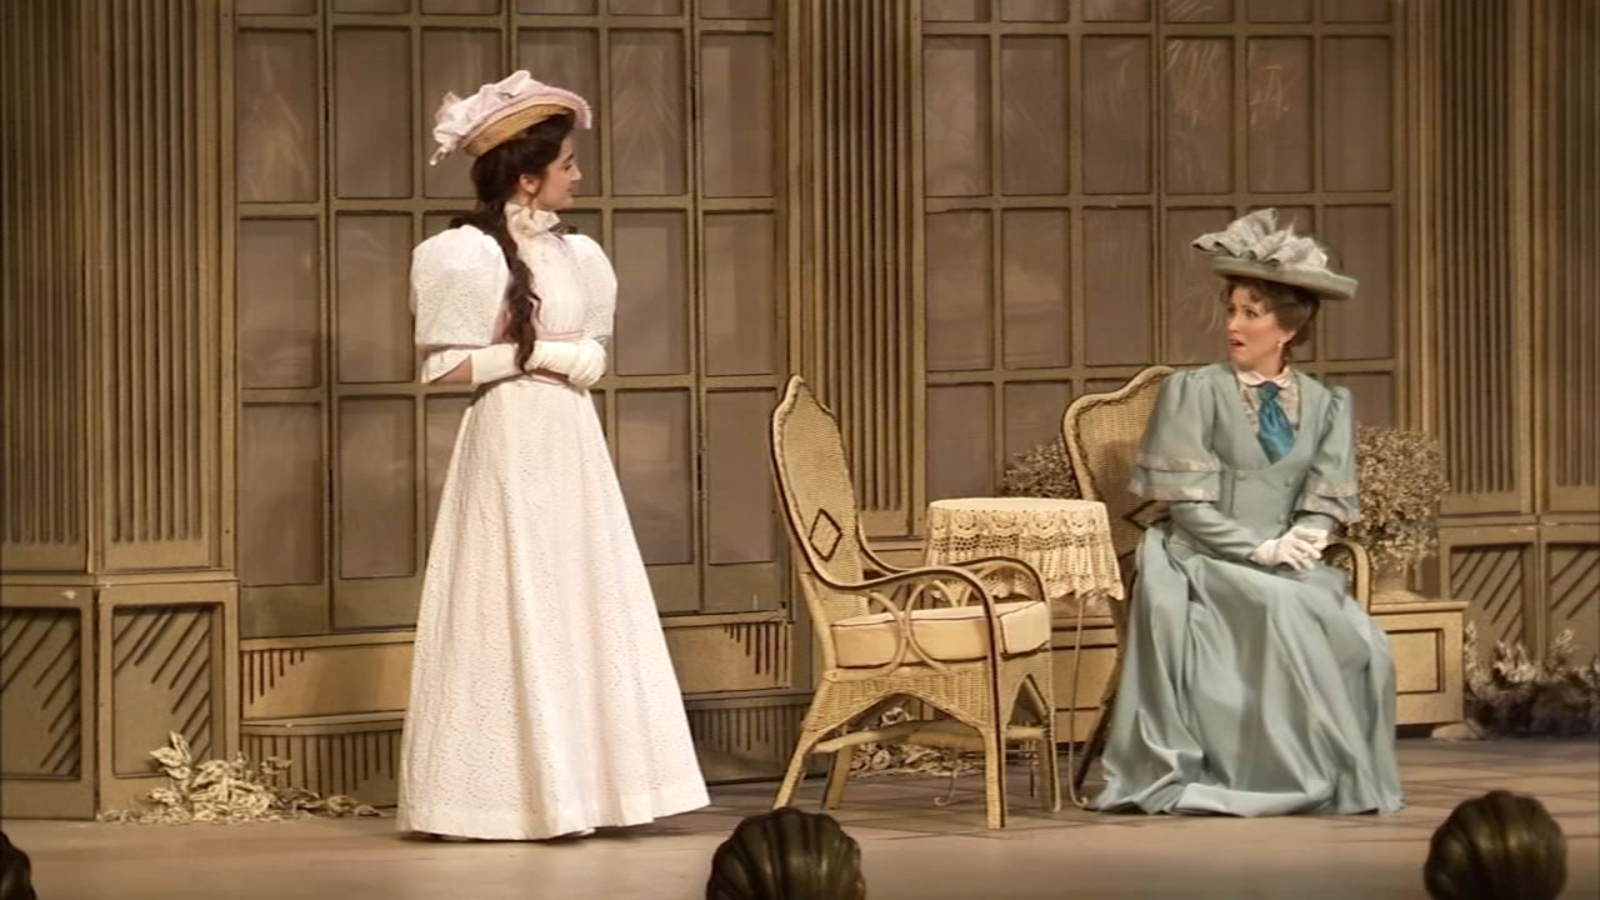 A Woman Of No Importance Oscar Wilde S Classic Play Hit The Walnut Street Theater Stage From January 16 22 6abc Loves The Arts 6abc Philadelphia